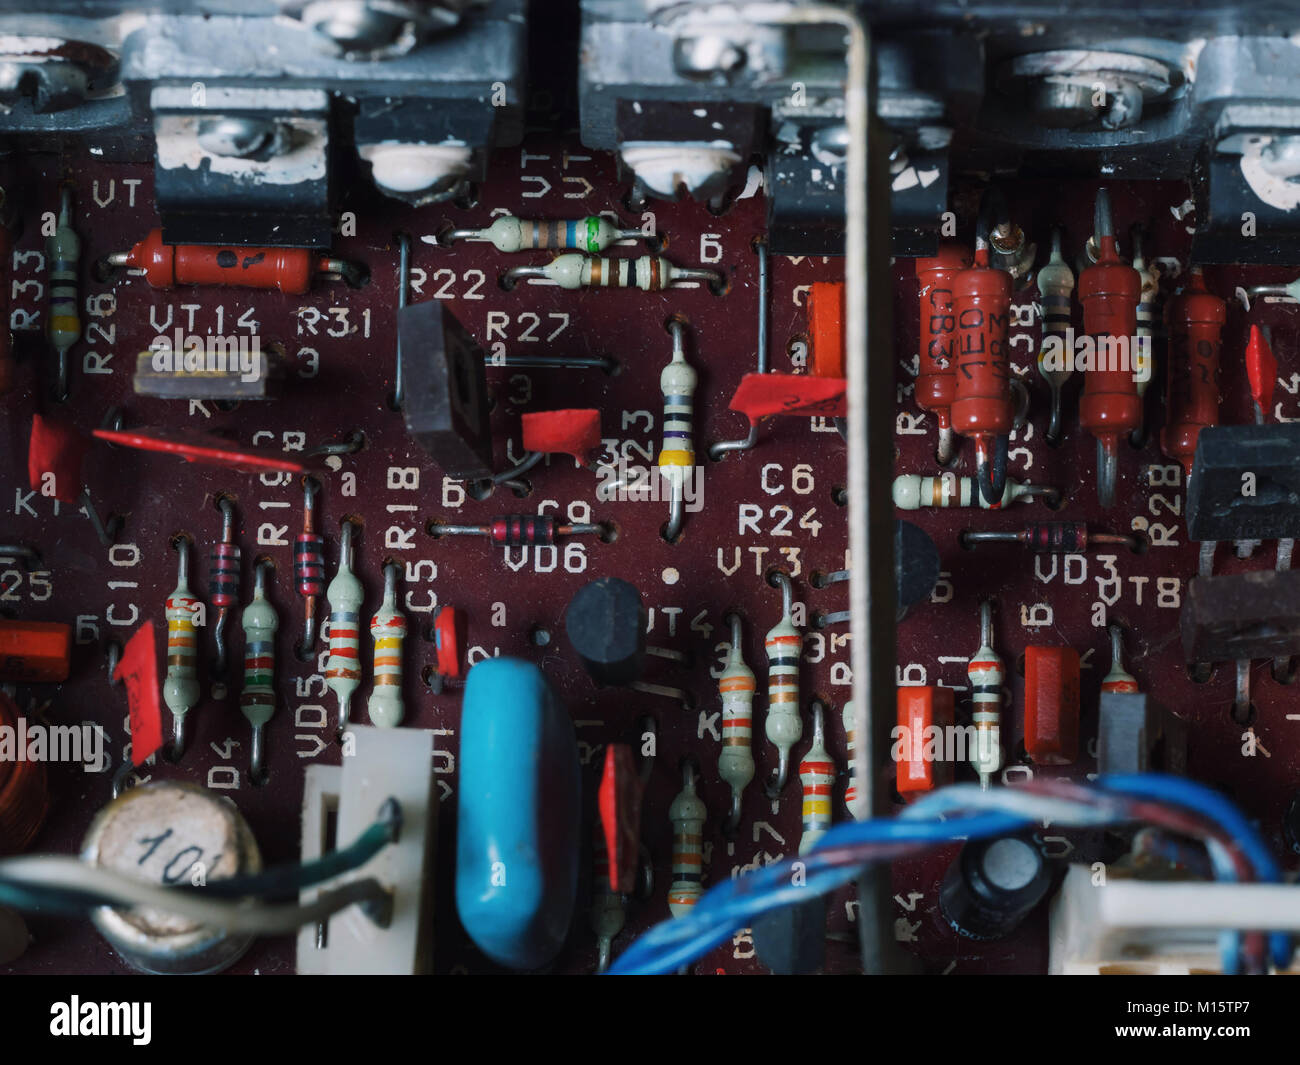 Amplifier Circuit Stock Photos Images Alamy Input Signal Amplifiercircuit The Soft Blurred Of Old Car Stereo Power Electronic Boardtransformers